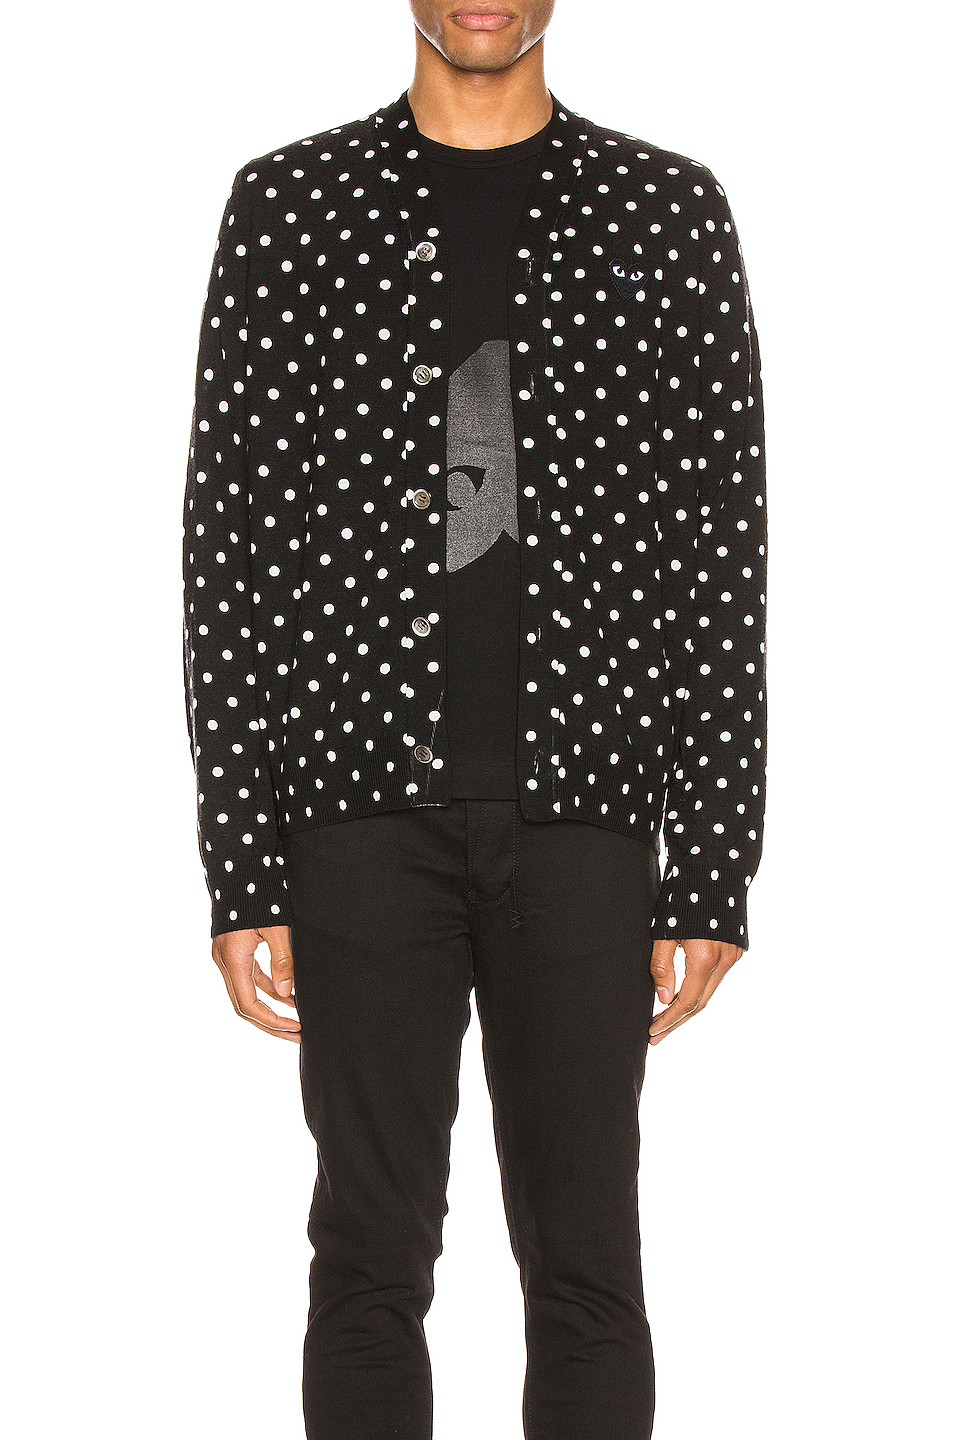 Comme Des Garcons PLAY Dot Print Wool Cardigan with Black Emblem in Black,Geometric Print